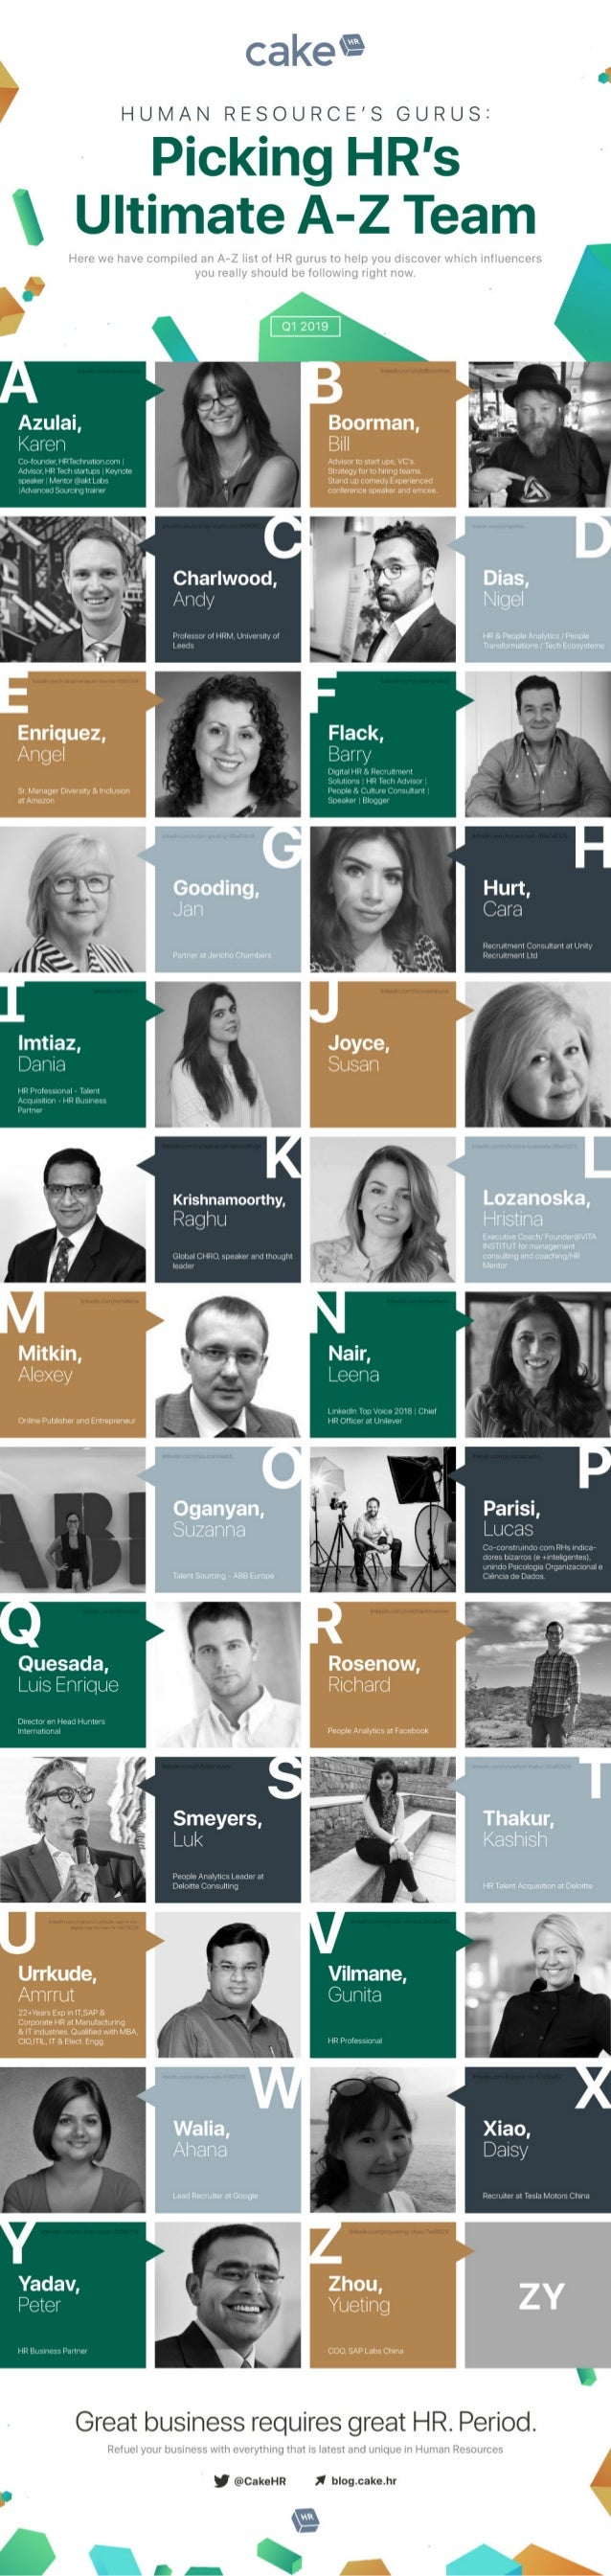 HR Gurus for Q1 2019: The A-Z of Human Resources Experts This Quarter [Infographic]